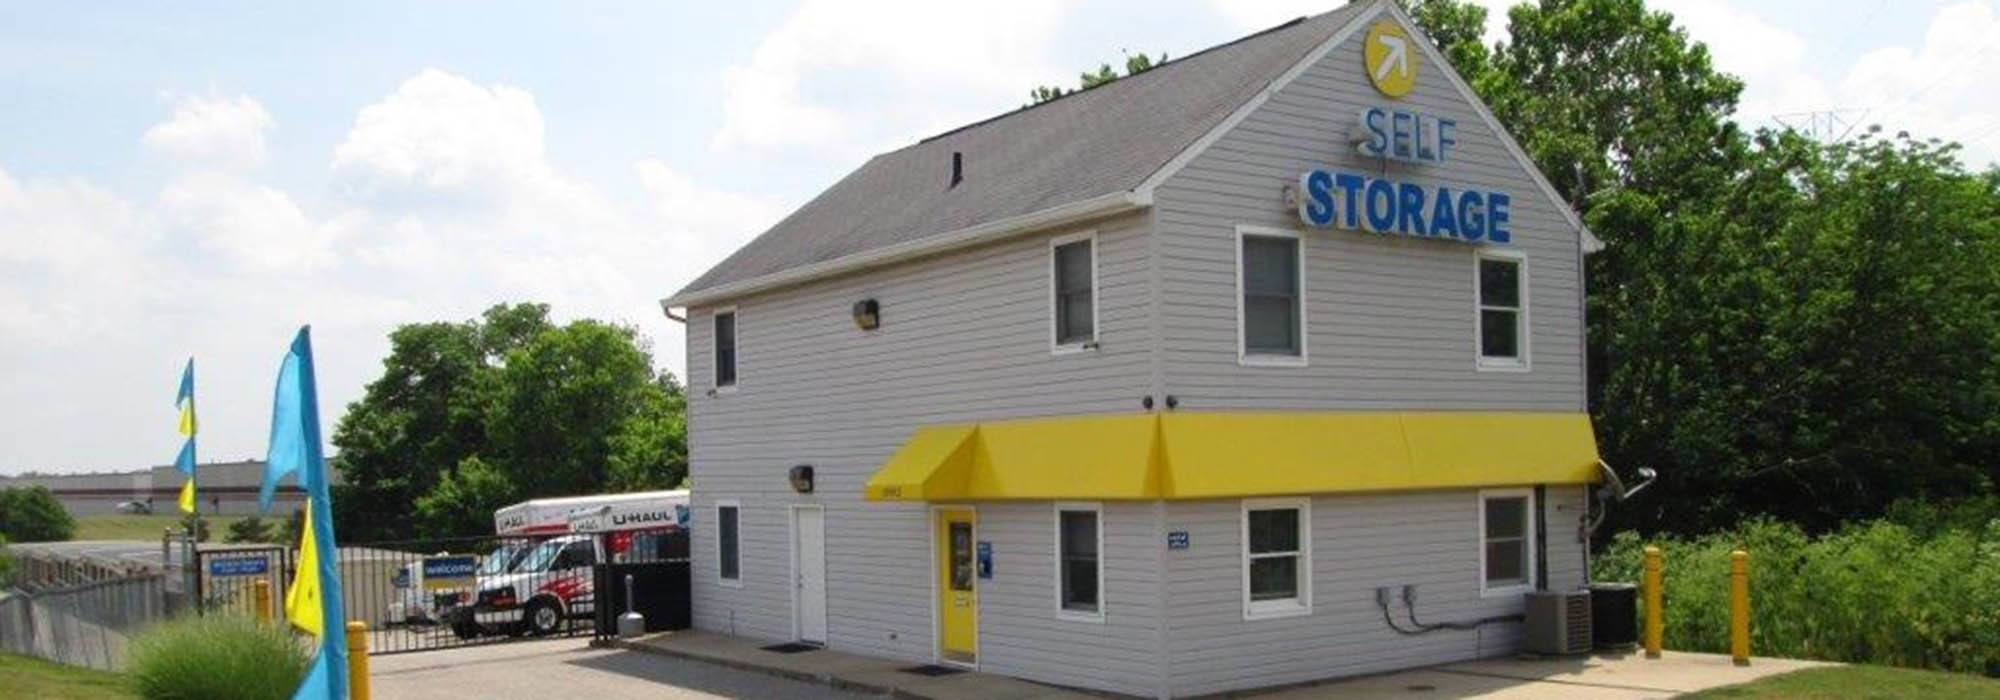 Exterior of Compass Self Storage in Hebron KY